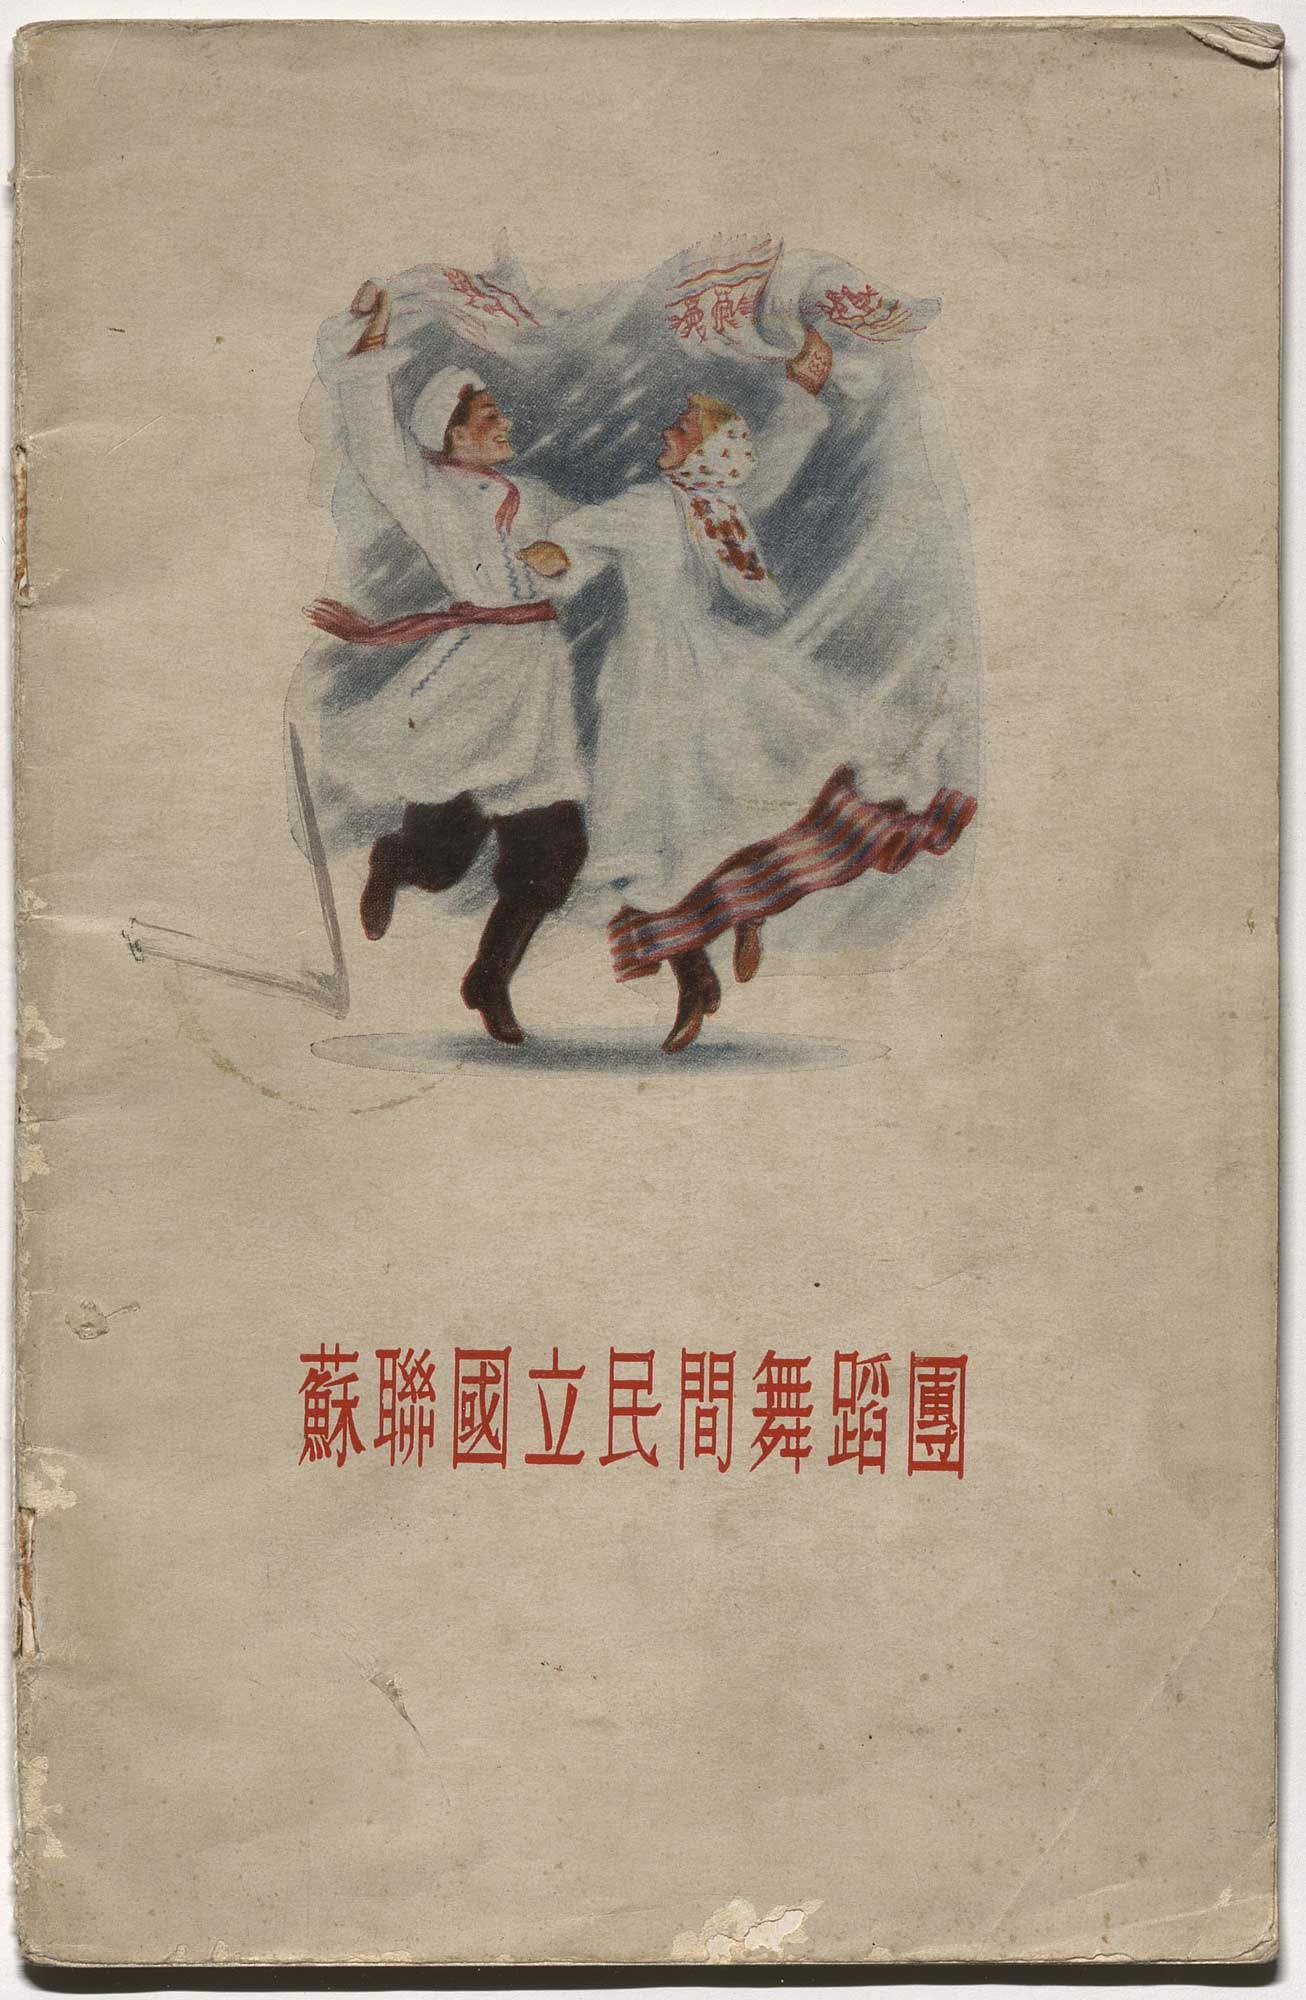 The program of the National Folk Dance Ensemble of the USSR, also known as the Moiseyev Dance Ensemble, visit to China in 1954